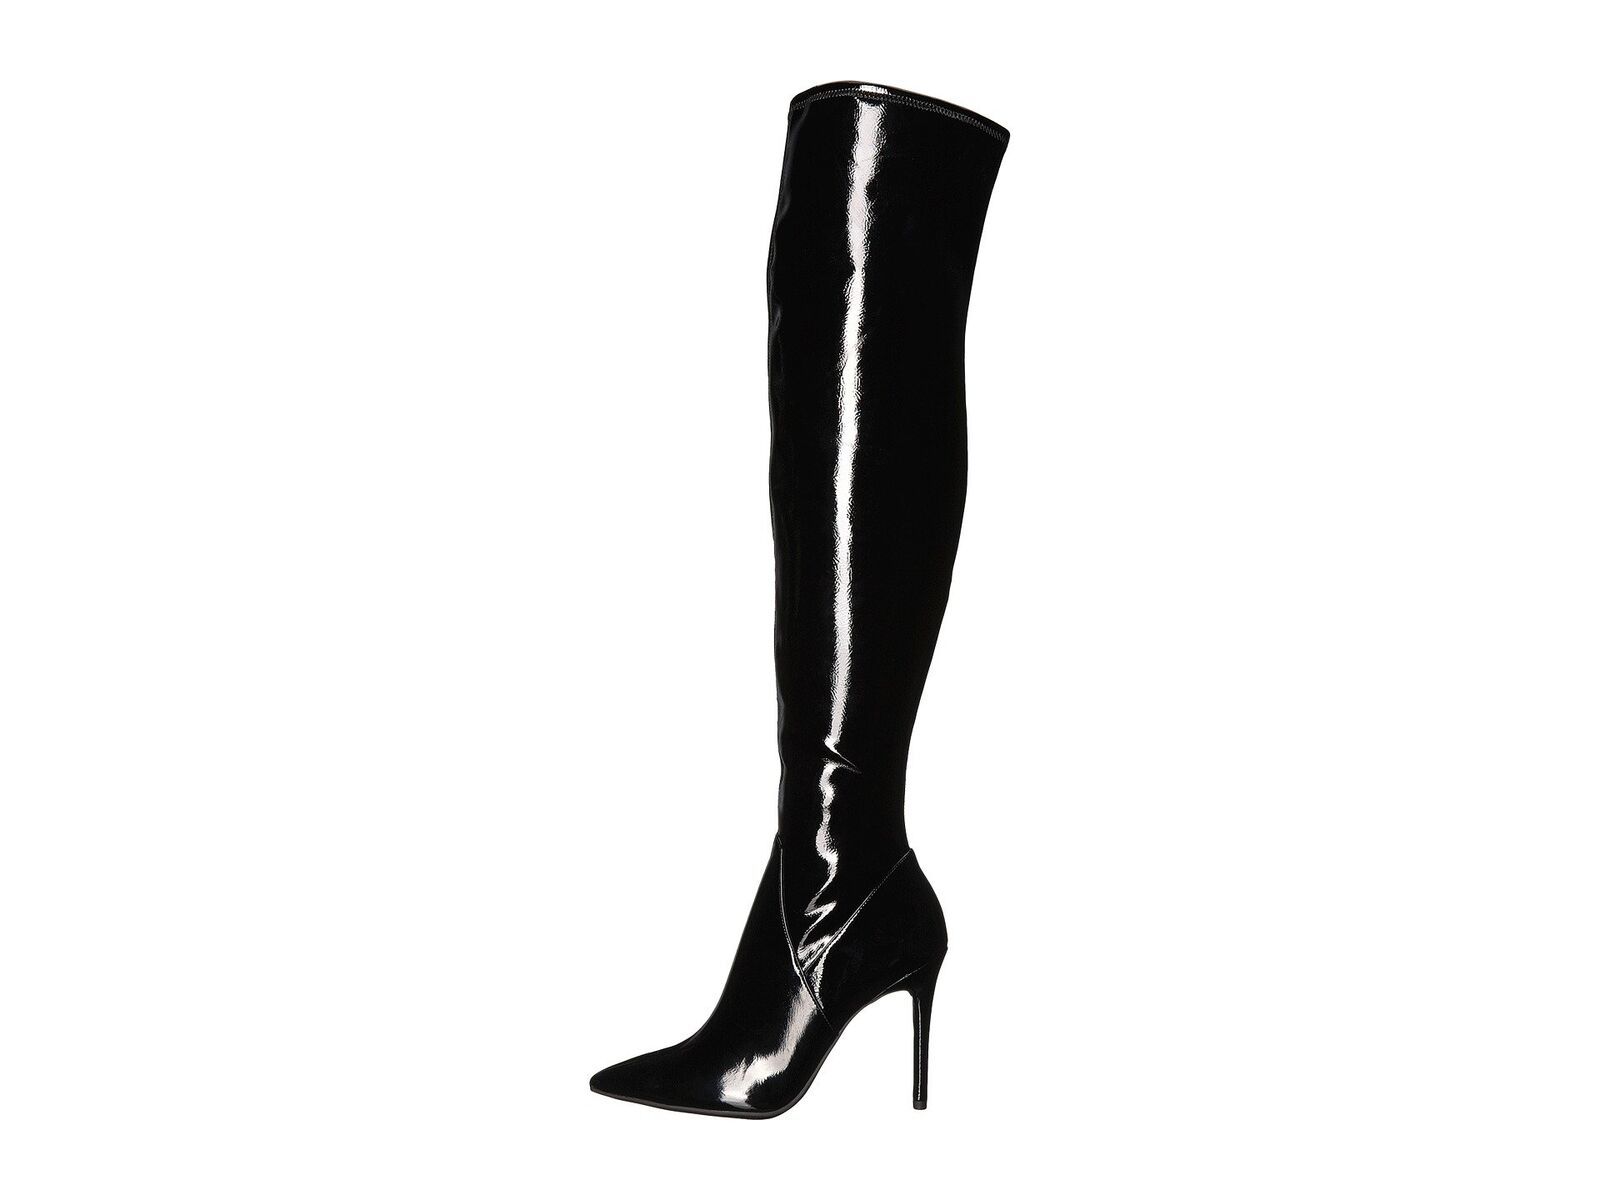 Jessica Simpson Loring Stretch Cuissardes bottes